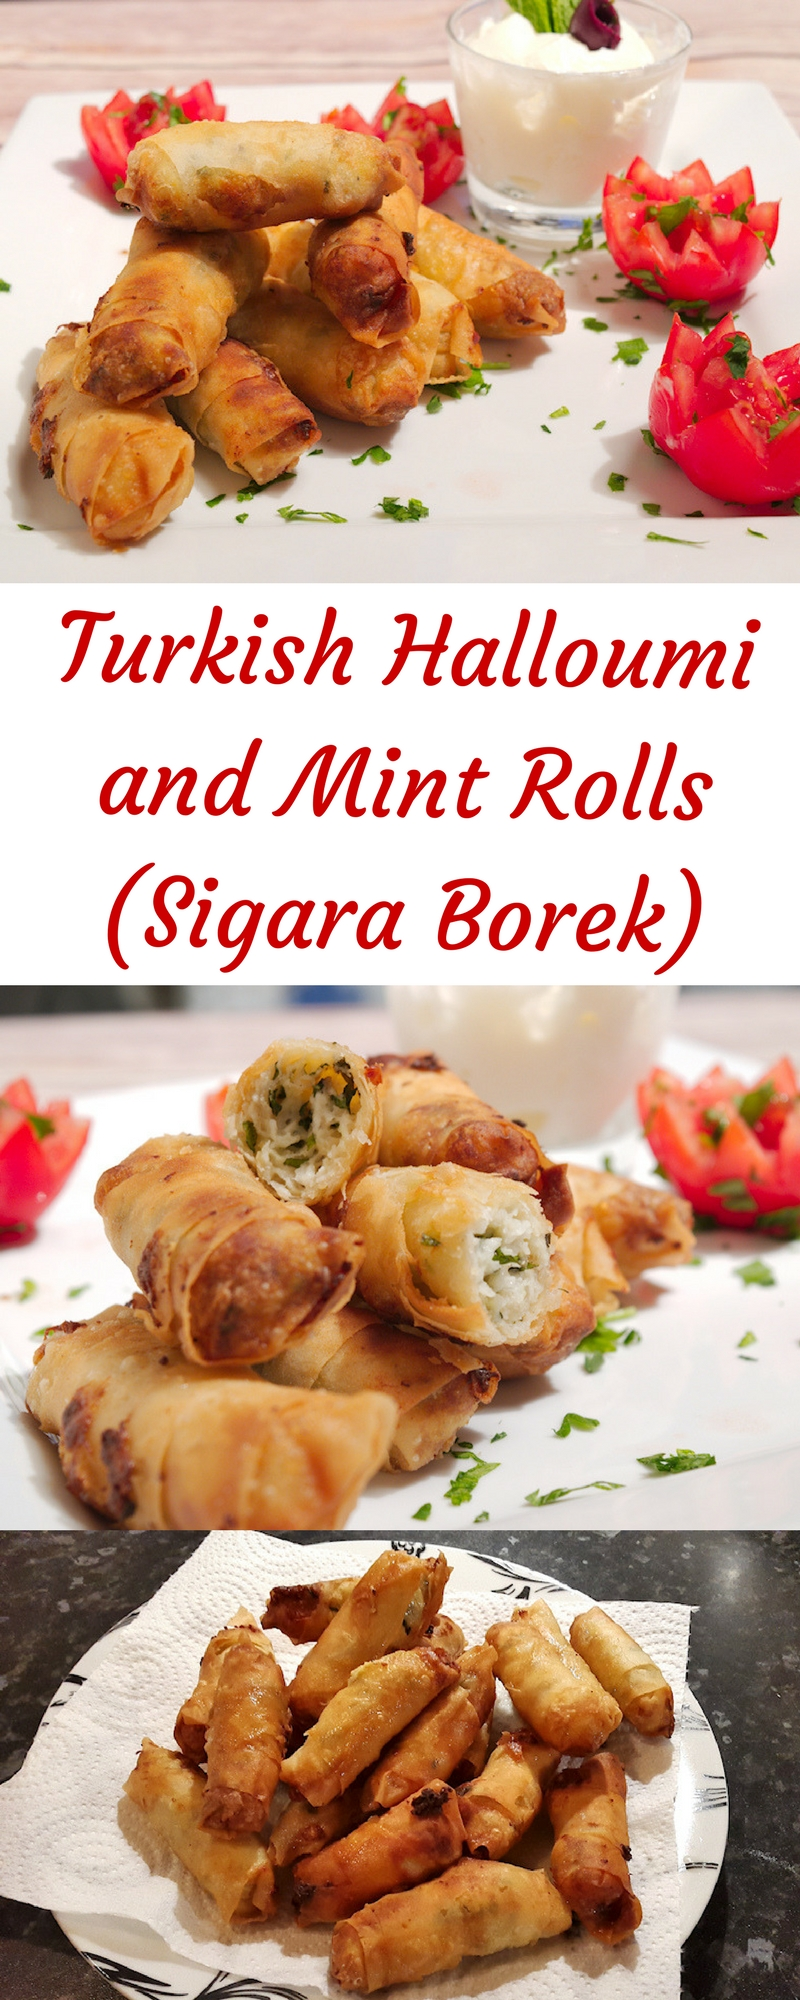 Turkish Halloumi and Mint Rolls (Sigara Borek)